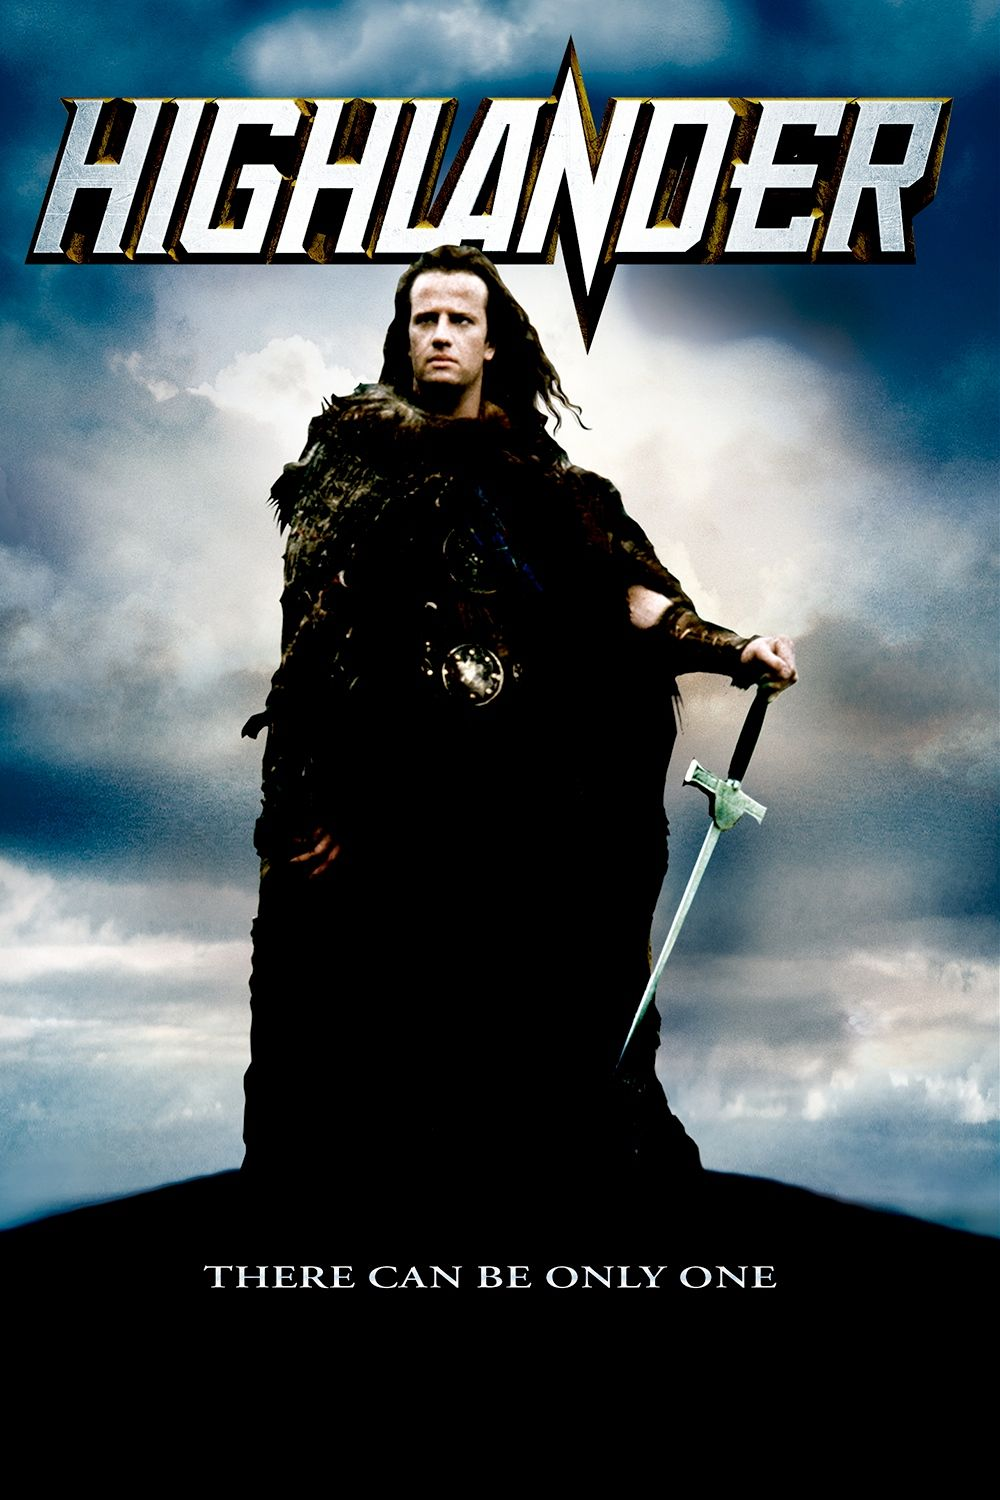 Highlander 1 O Guerreiro Imortal Highlander I There Can Be Only One Highlander Movie Best Action Movies Action Movies